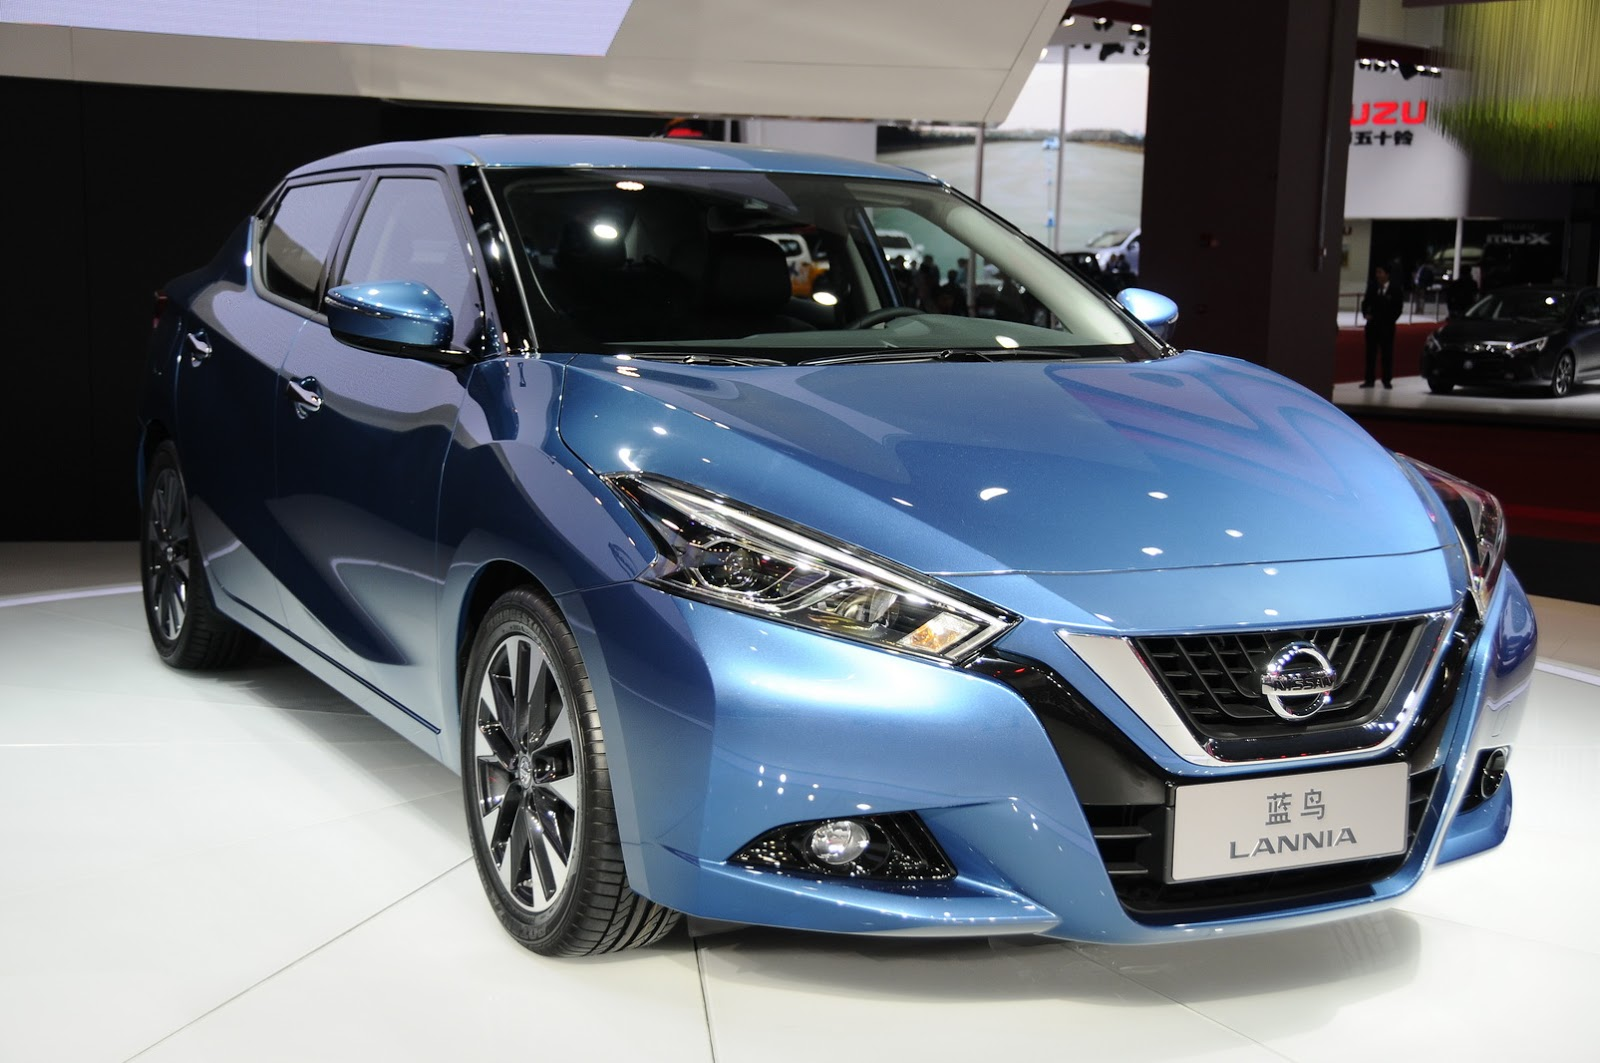 Nissan started selling its strange sedan